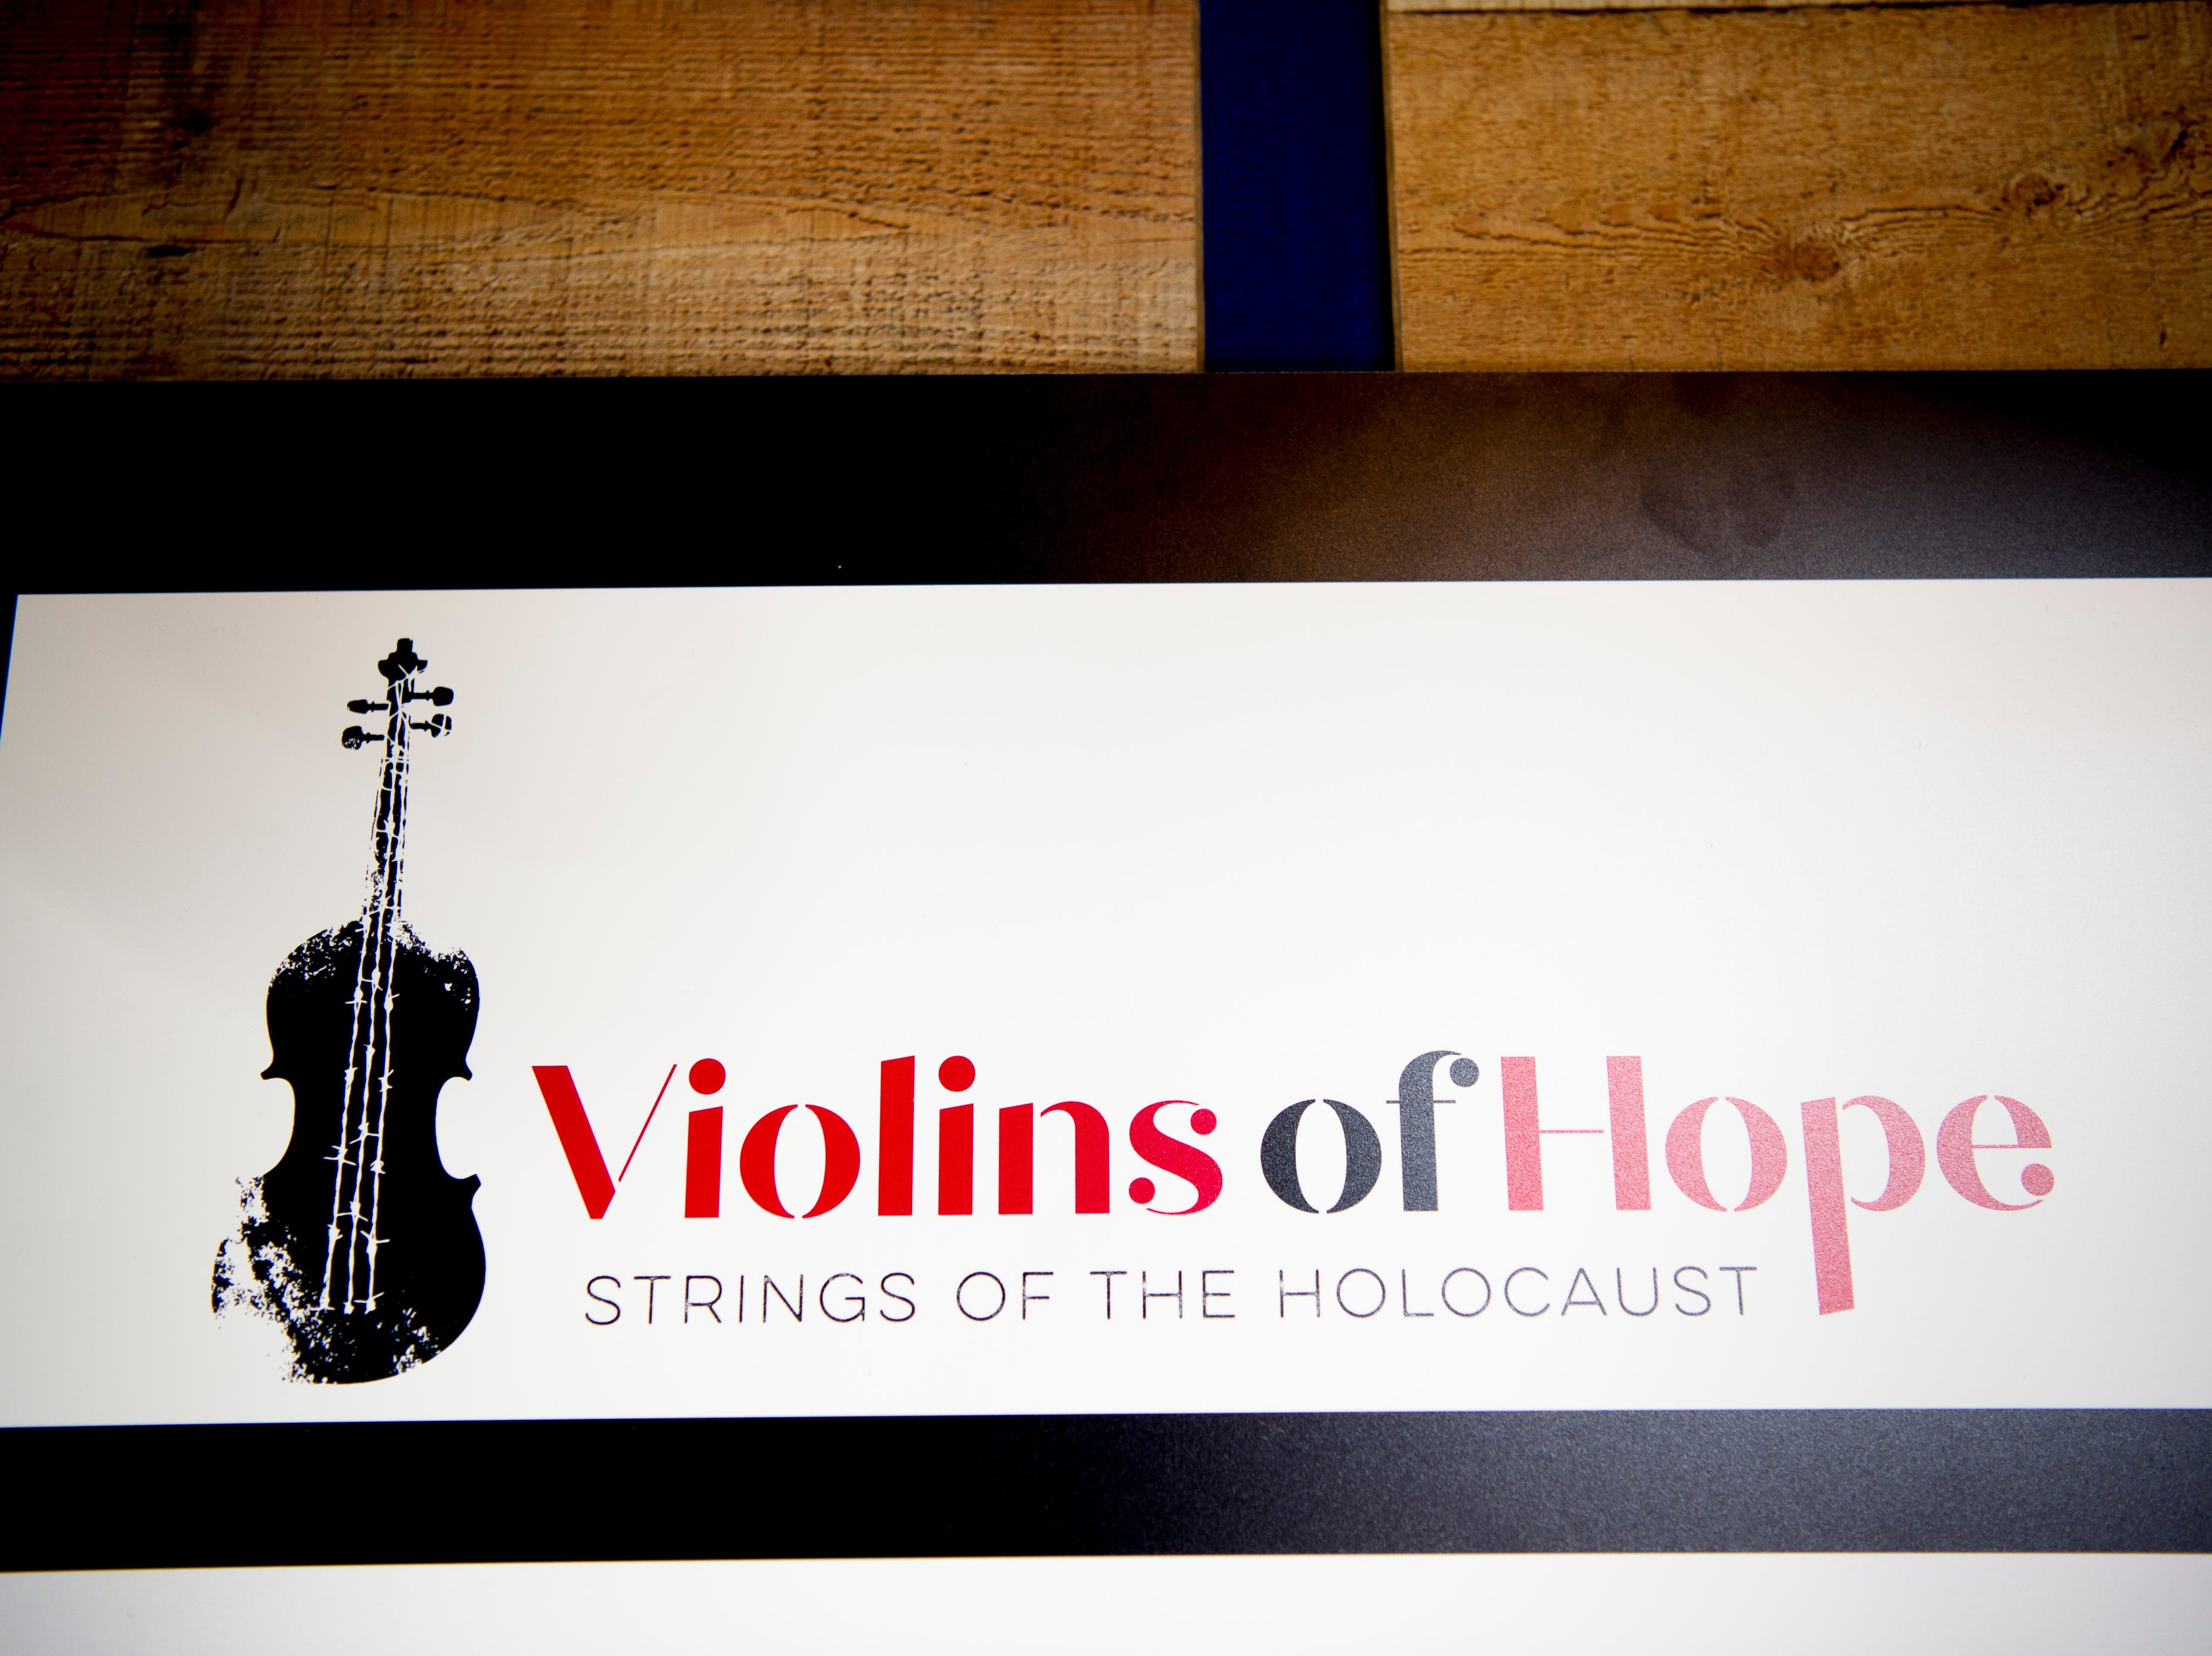 The Violins of Hope logo at the Violins of Hope exhibit at the University of Tennessee Downtown Gallery, 106 S. Gay St., in Knoxville, Tennessee on Friday, January 4, 2019. The exhibit, from Israel, features 38 violins that were played by Jewish musicians during the Holocaust. The display runs from Jan. 4-27.